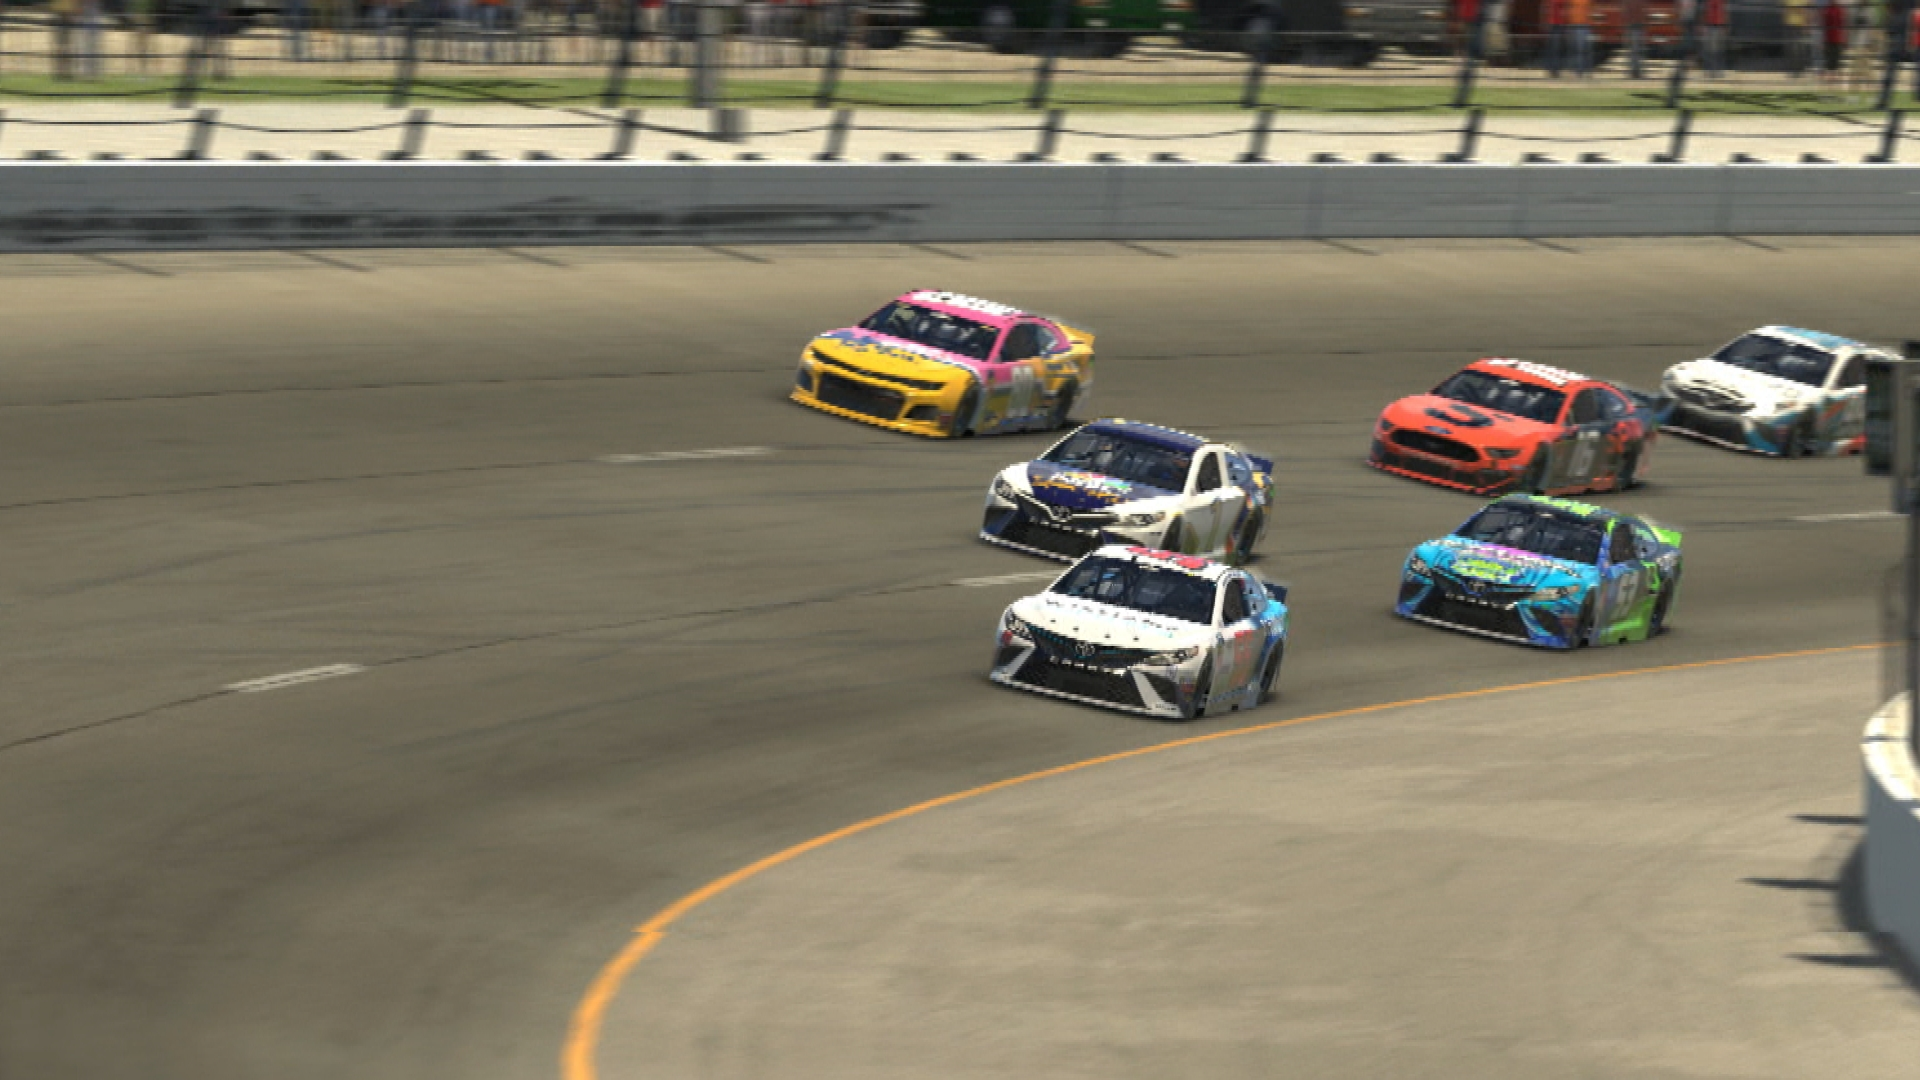 eSports: NASCAR America's debut of iRacing All-Star Event